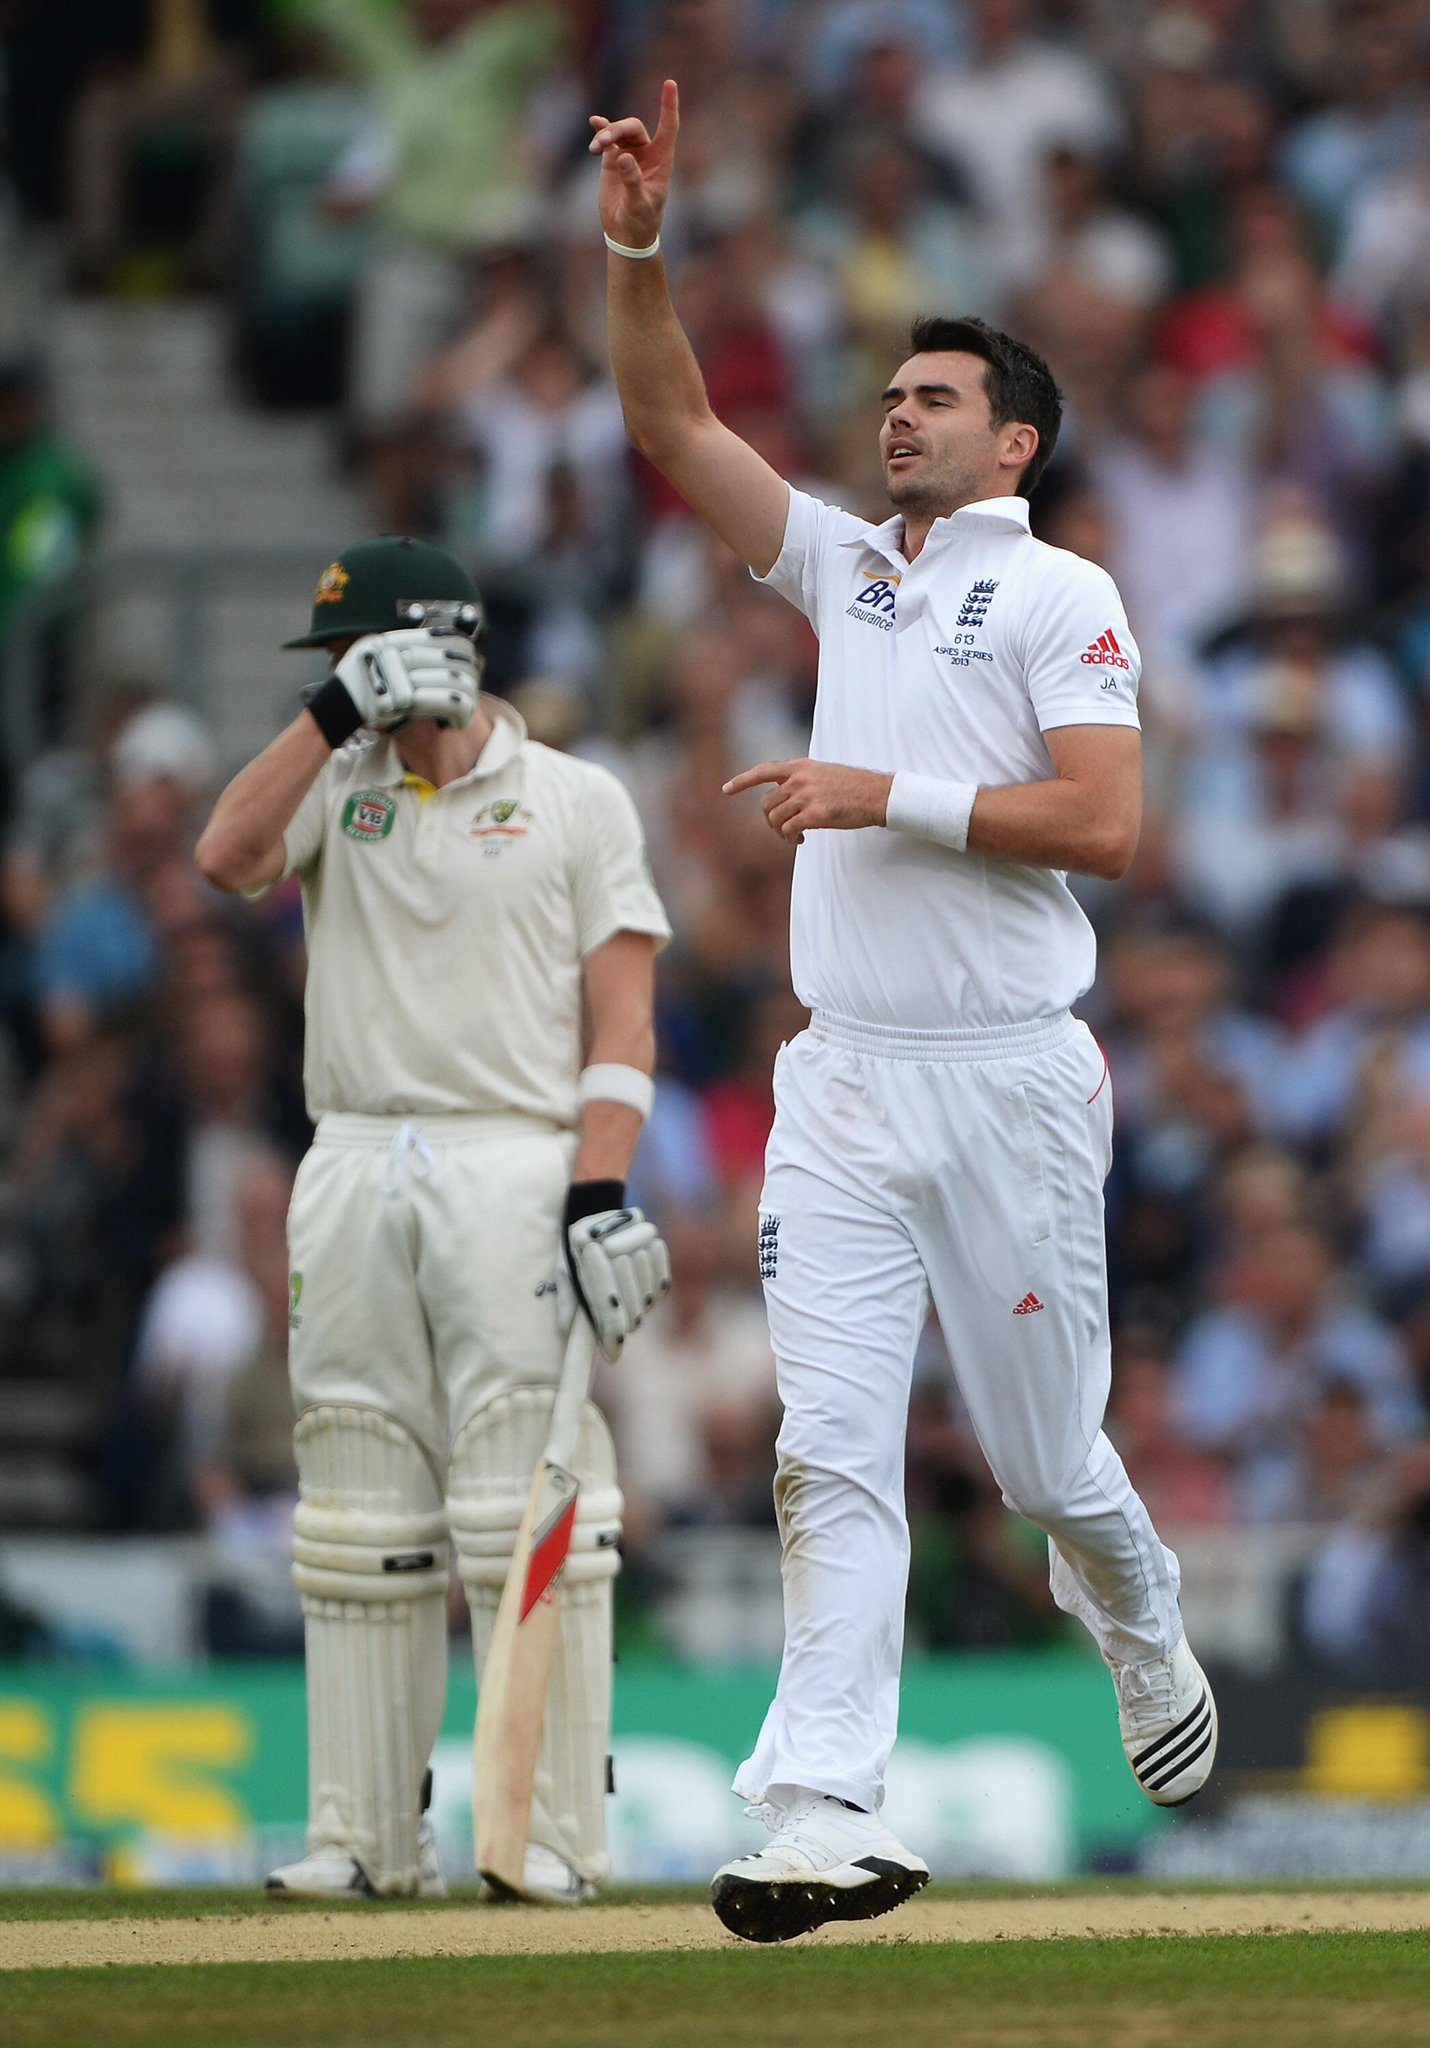 Jimmy Anderson dismisses Peter Siddle for the tenth time, making him his most frequent victim #Ashes http://t.co/npwLb1rBYS